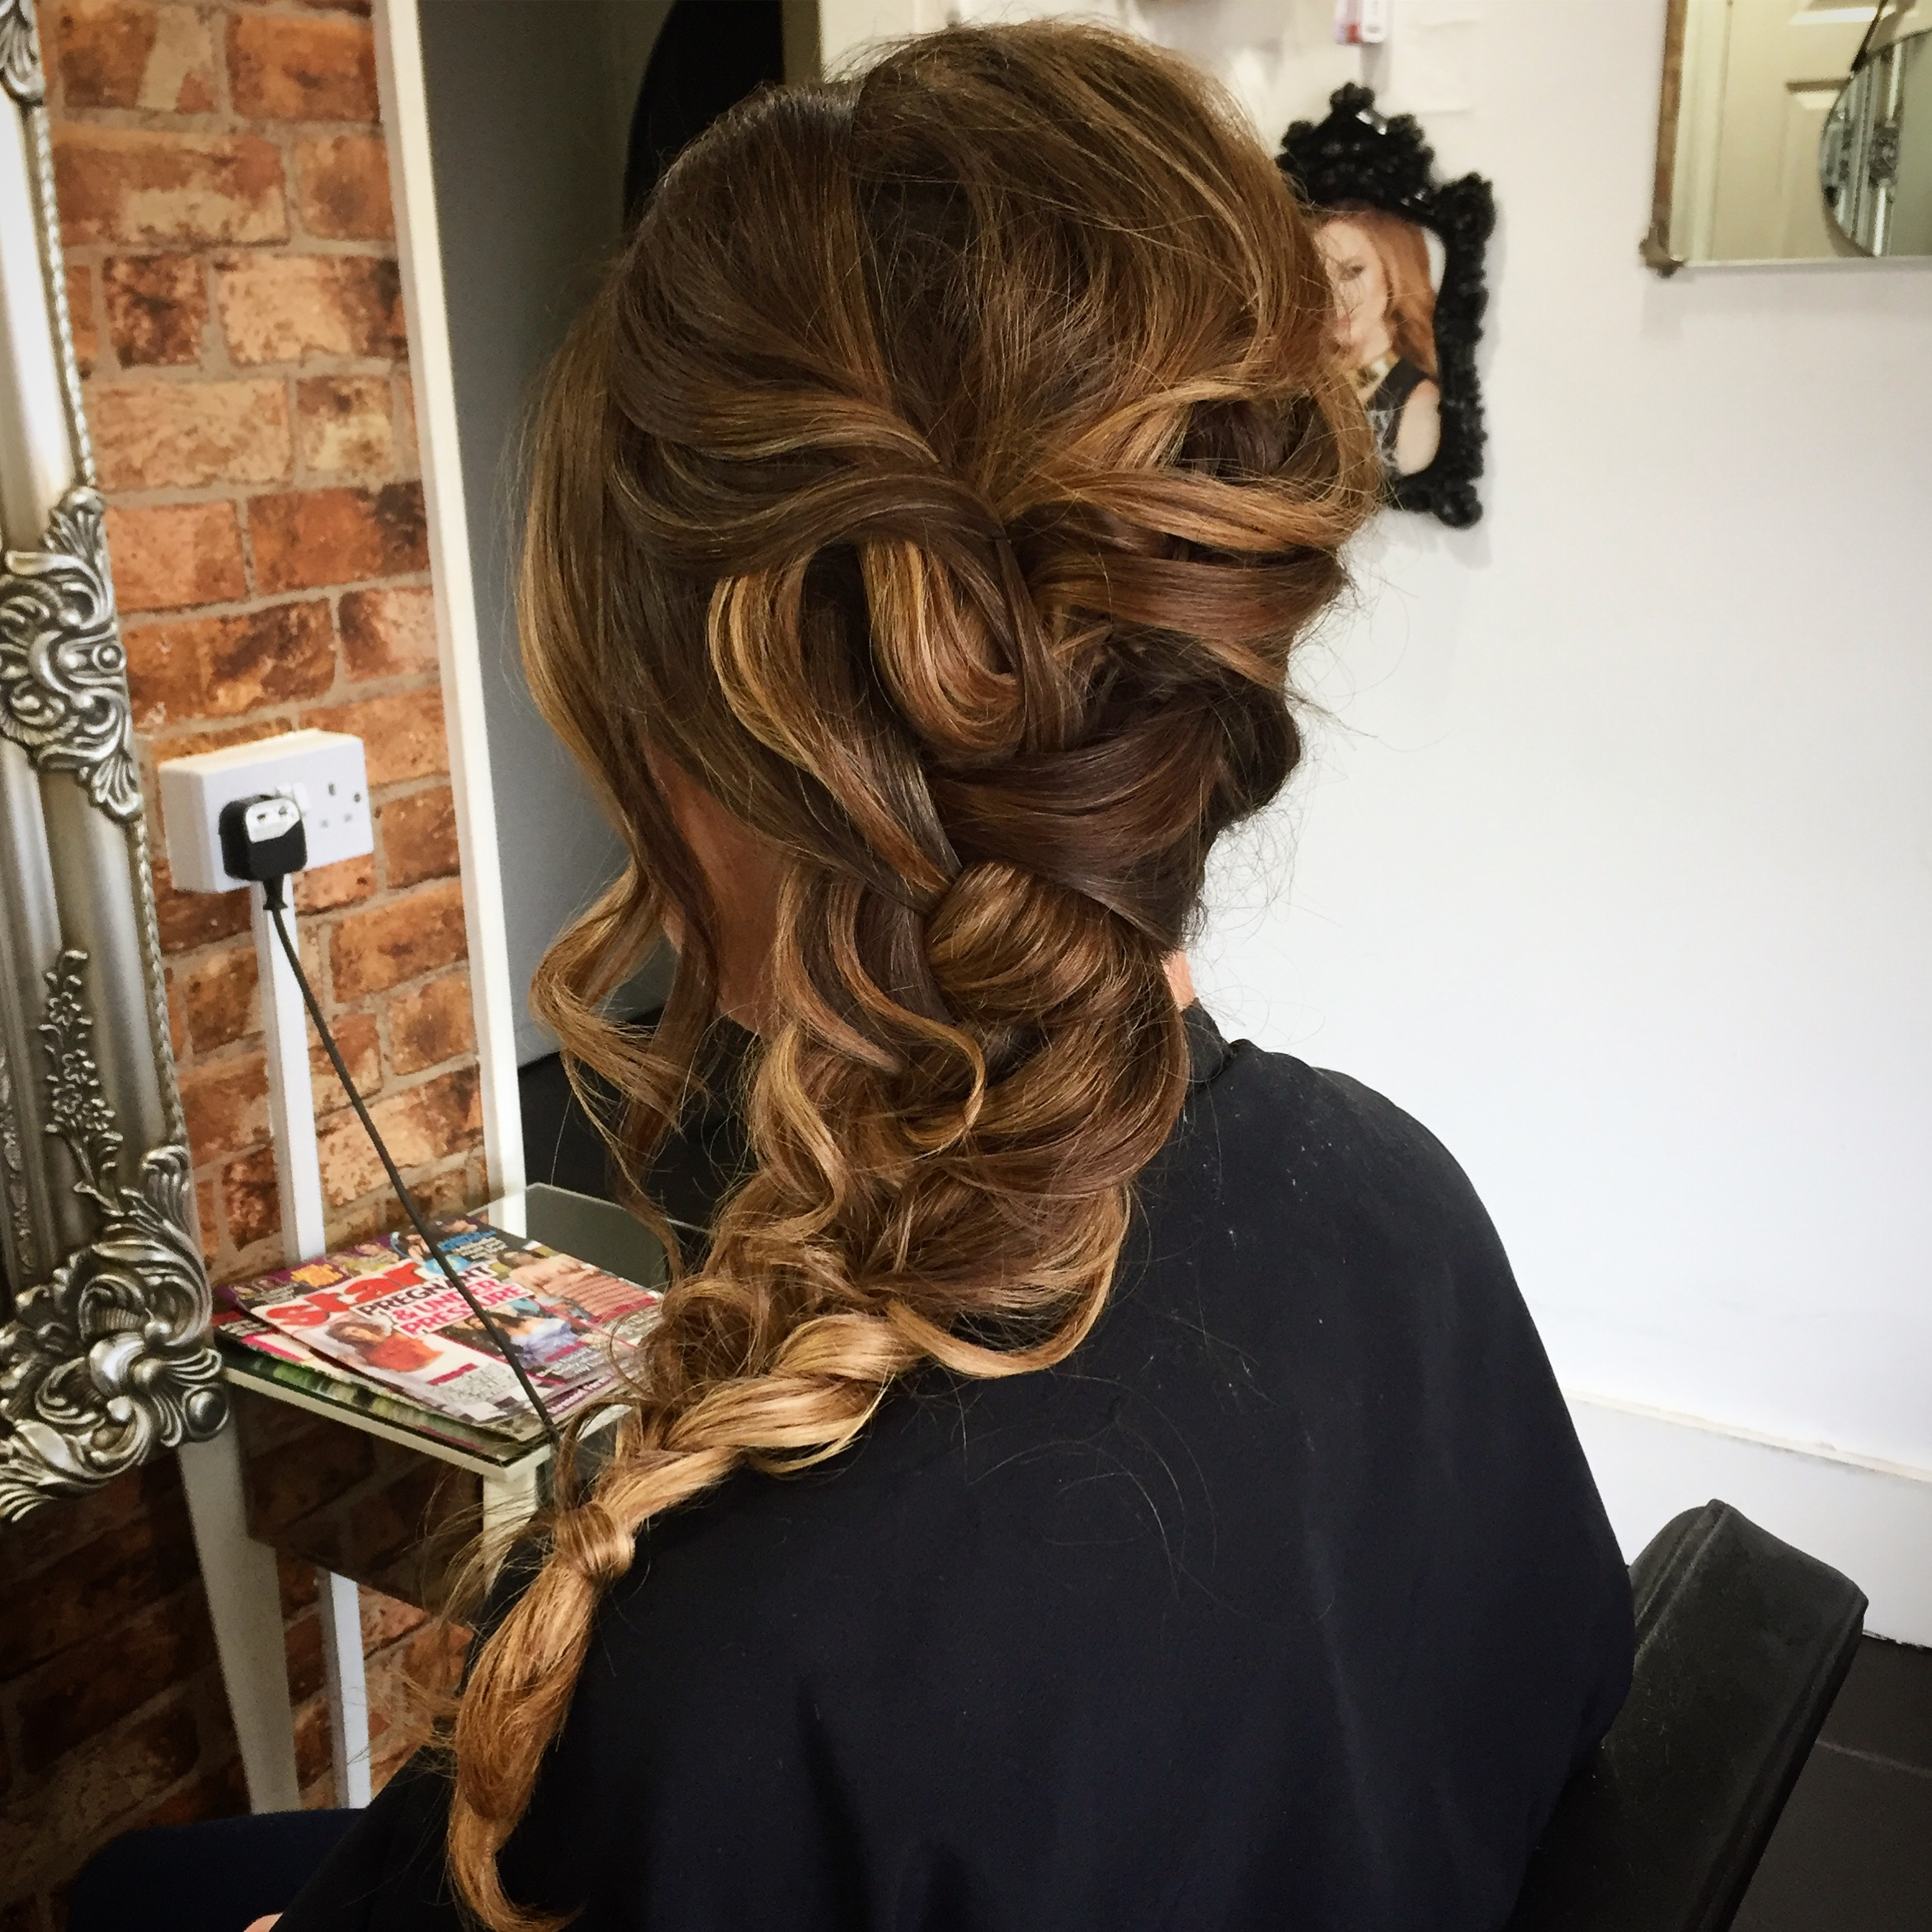 plaited loose hair up created by wedding hair specialist on balayage hair